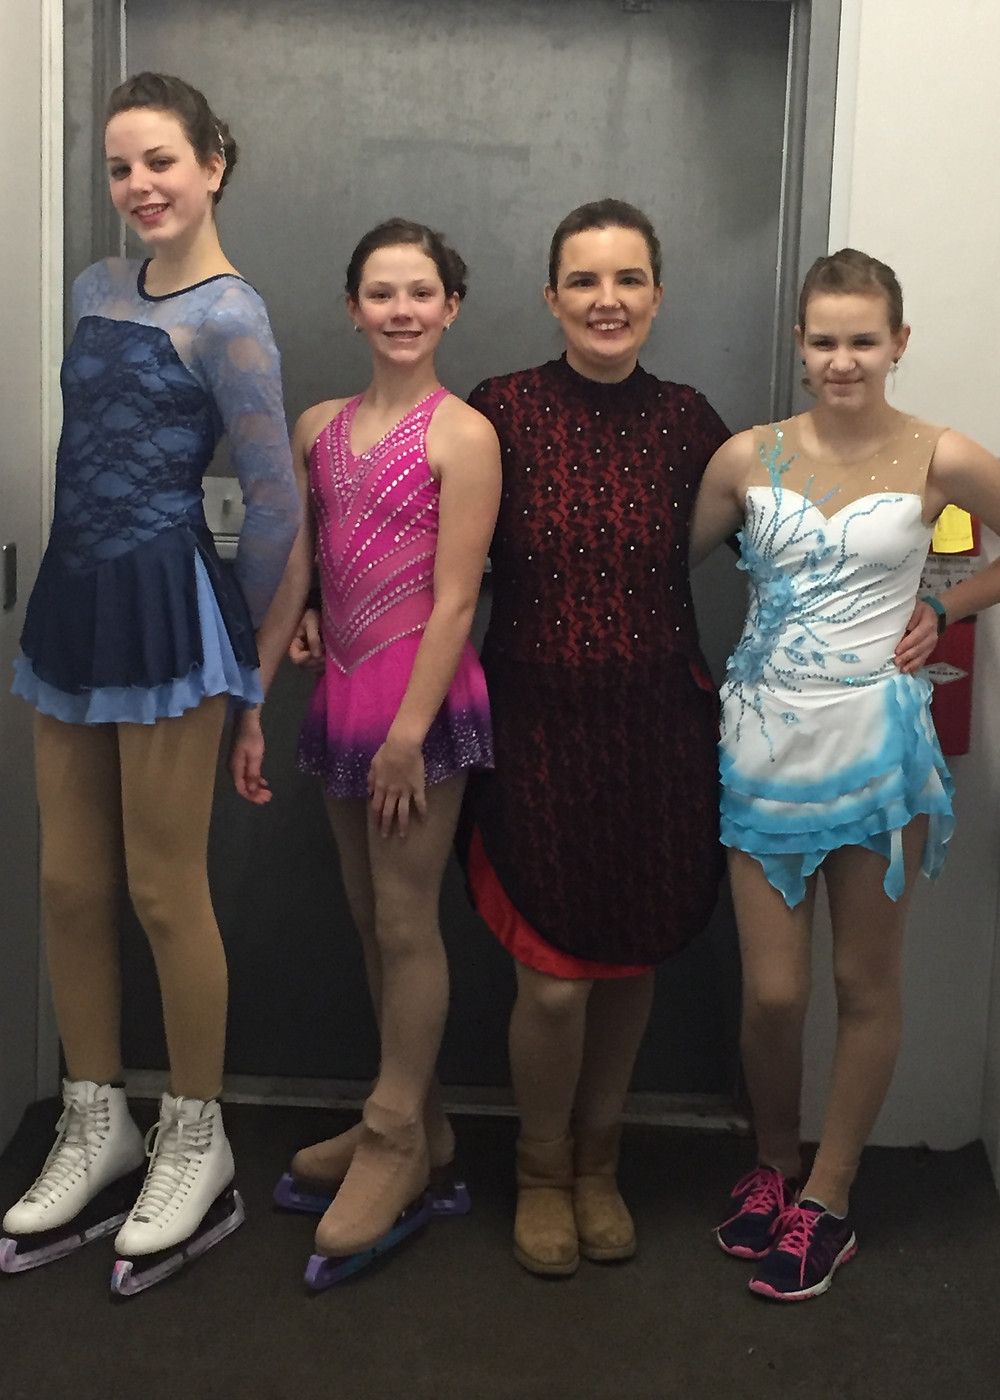 Pictured (L to R): Senior Skaters - Chloe, Janae, Kennedy & Eleanor